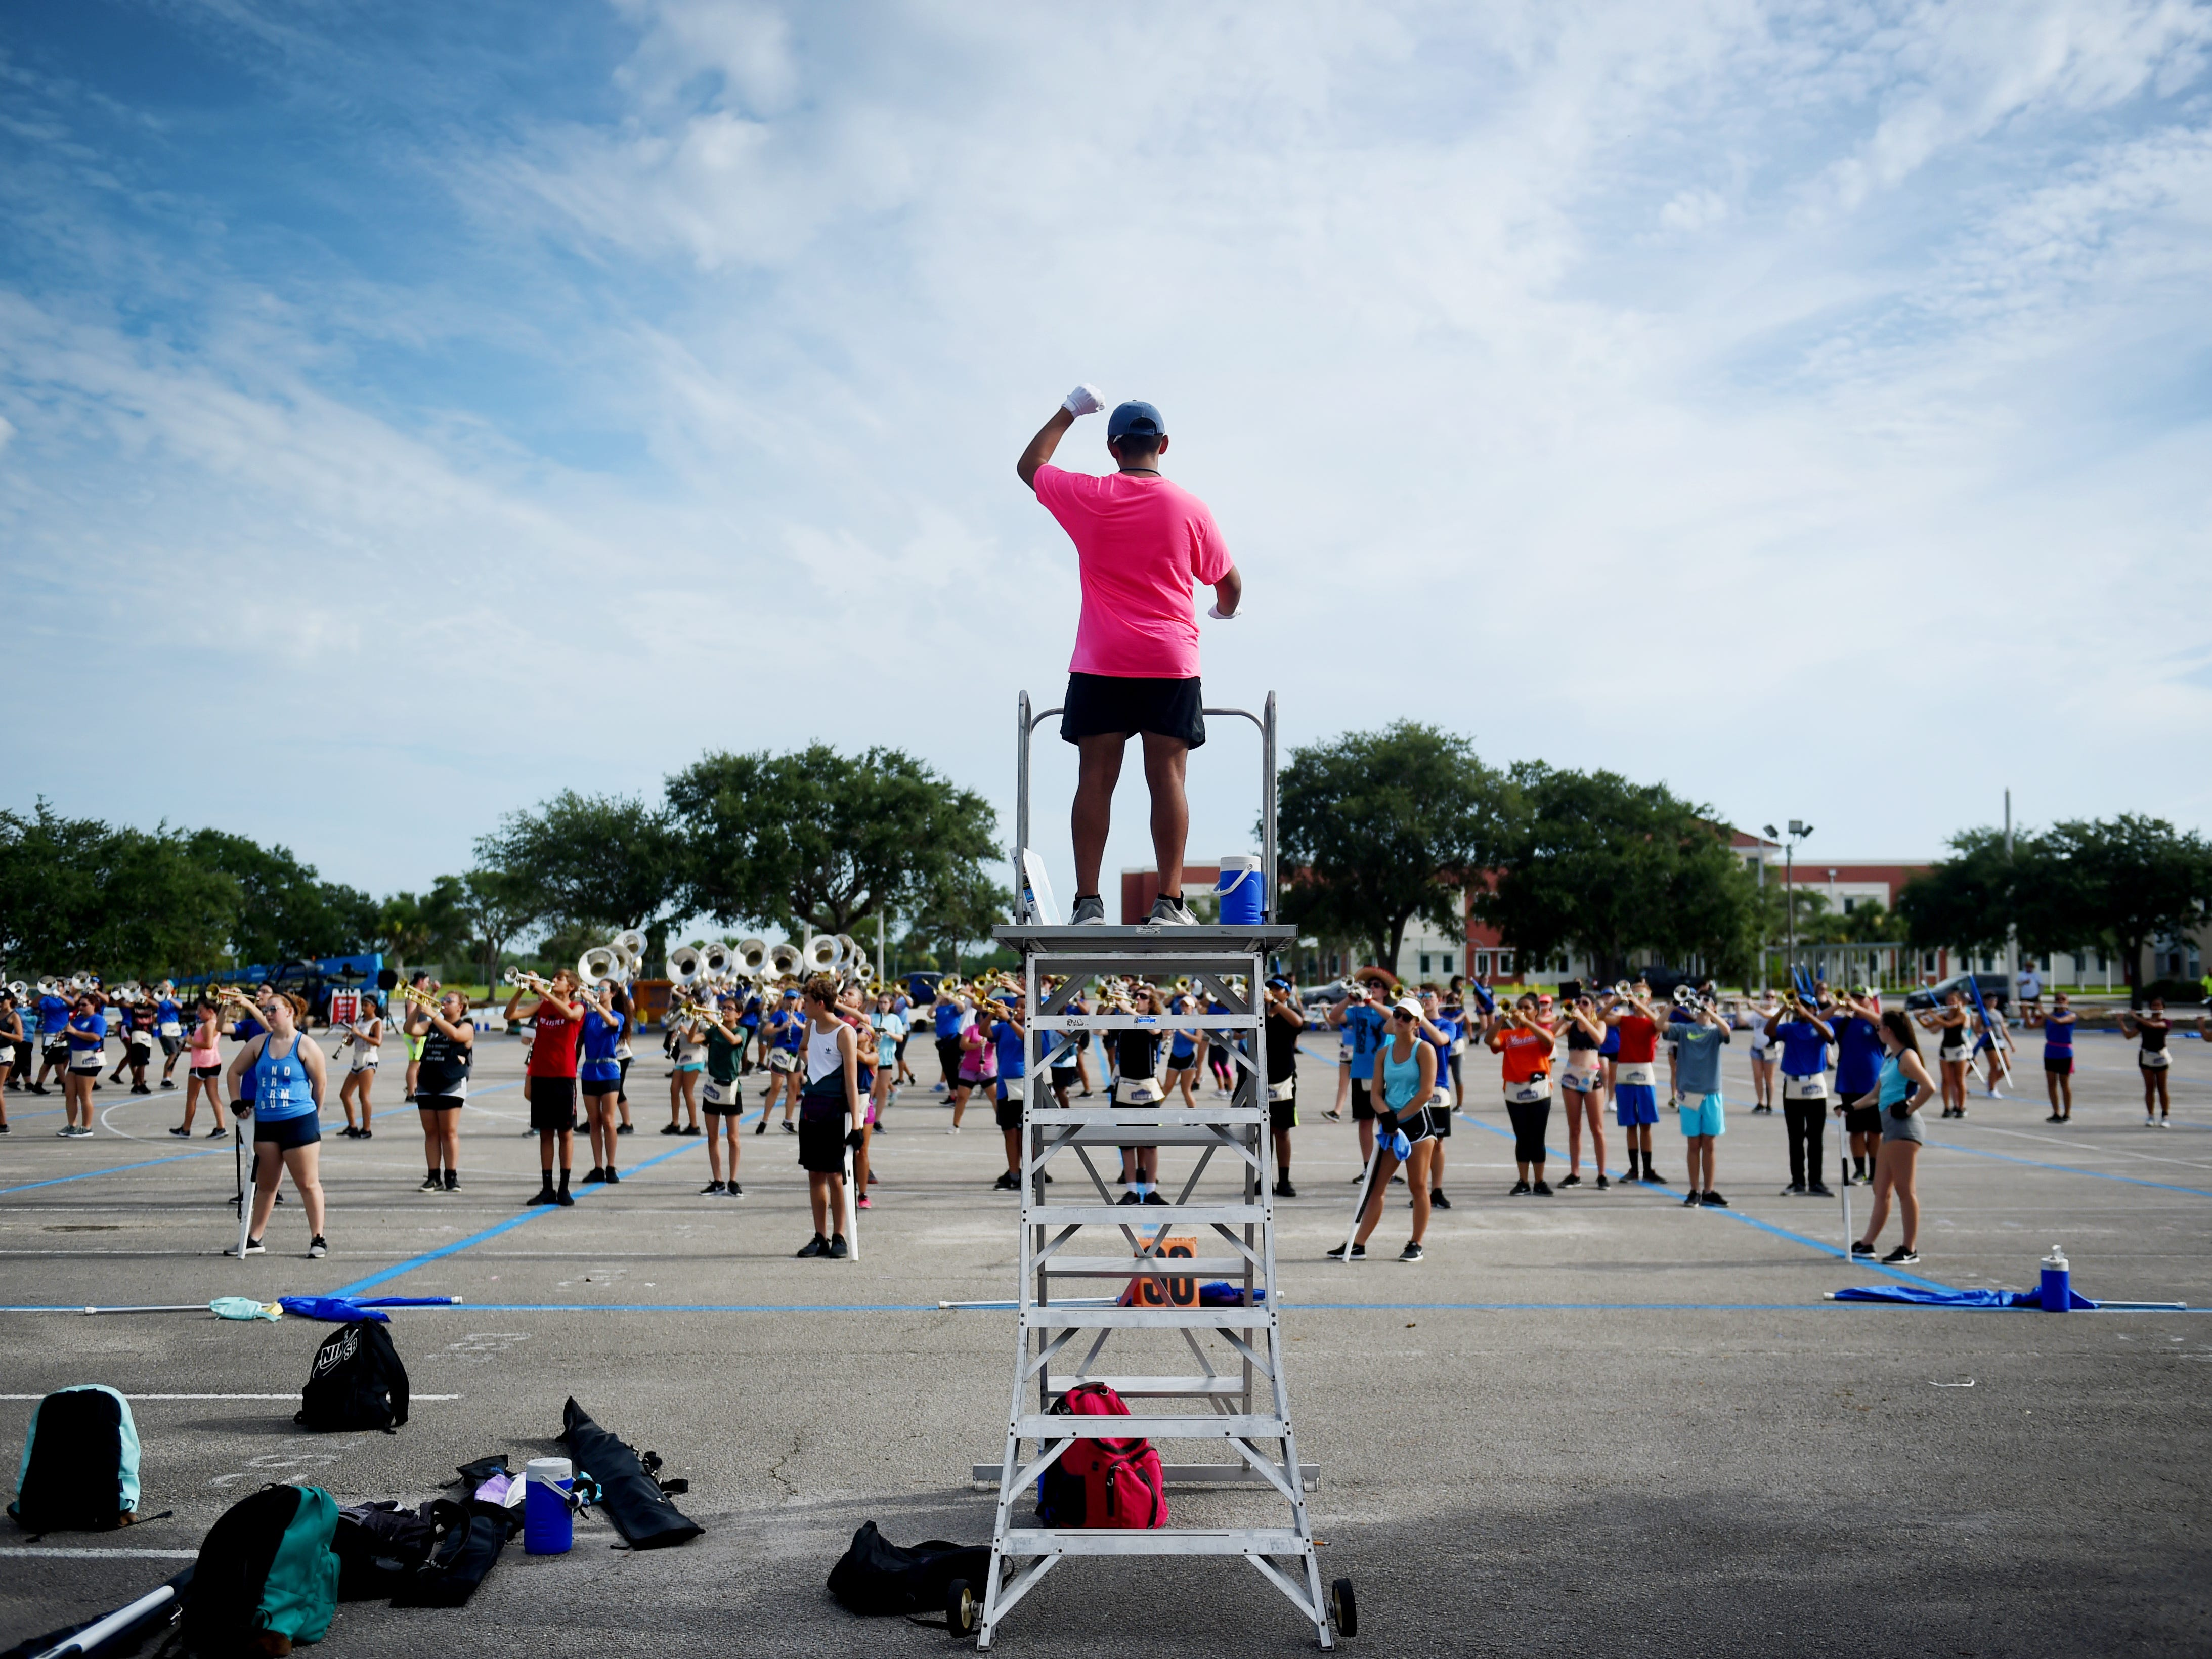 """Sebastian River High School marching band senior drum major Eduardo Ambris helps lead fellow band members through music and marching drill Tuesday, July 31, 2018 during the second week of band camp at the school. """"The Sebastian River High School Band, since its inception 25 years ago, our motto has been  'Strive for the highest' so our show is kind of a play on that motto,"""" said Ashby Goldstein, Sebastian River High School band director. """"Our show is called 'To the Highest' so it's all about things reaching upward."""" Sebastian River High School, as well as the band, will be celebrating it's 25th anniversary this year. """"We'll be looking back at the last 25 years and paying homage to everything that we've done,"""" Goldstein said. The 2018 marching band consists of about 300 students and will have the honor of marching in the New York City St. Patrick's Day Parade in March 2019."""